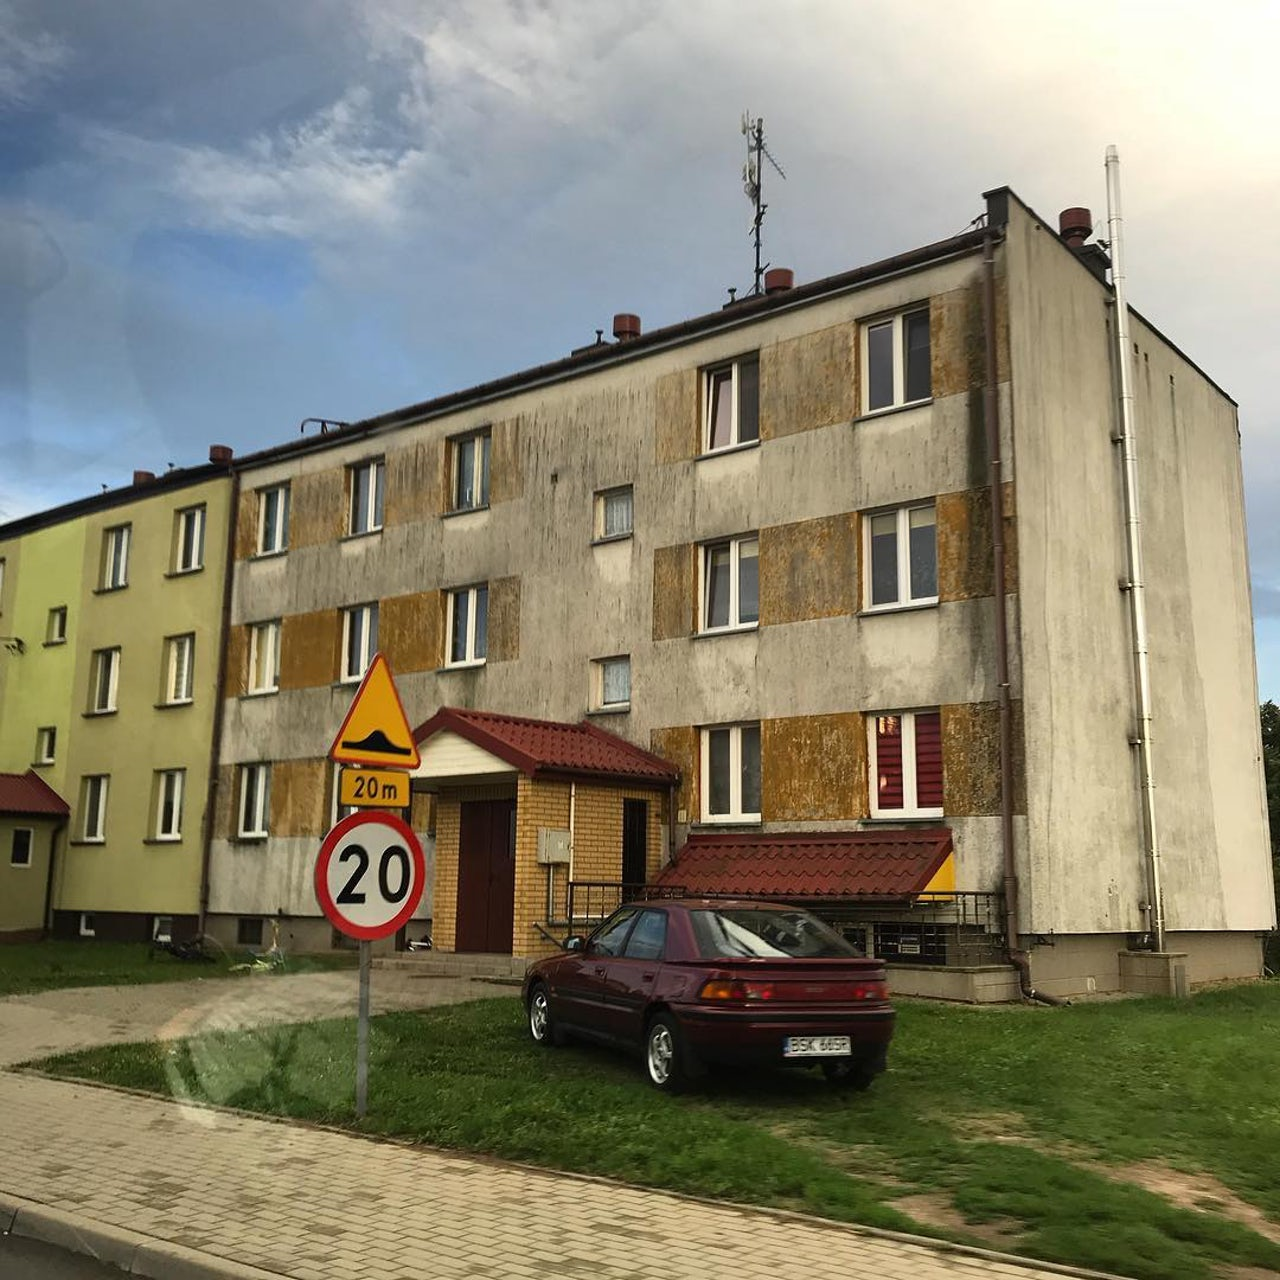 A typical Soviet-era apartment building in eastern Poland, where support for Law & Justice is strongest.